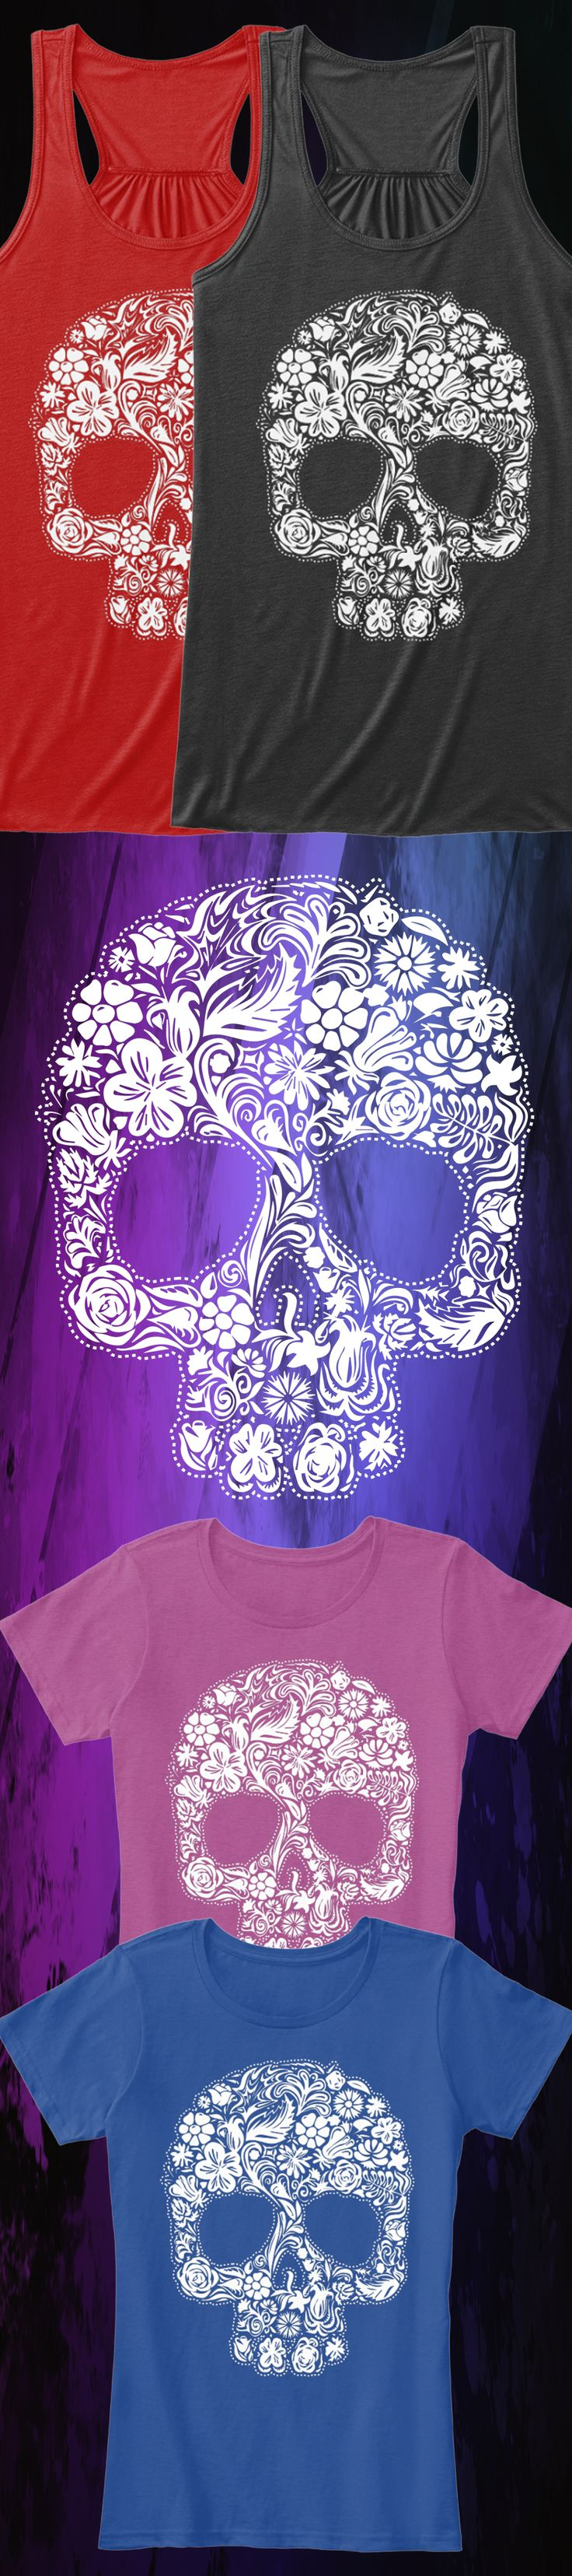 Do you love skull art?! Check out this awesome Shugar Skull t-shirt you will not find anywhere else. Not sold in stores and only 2 days left for free shipping! Grab yours or gift it to a friend, you will both love it 😘